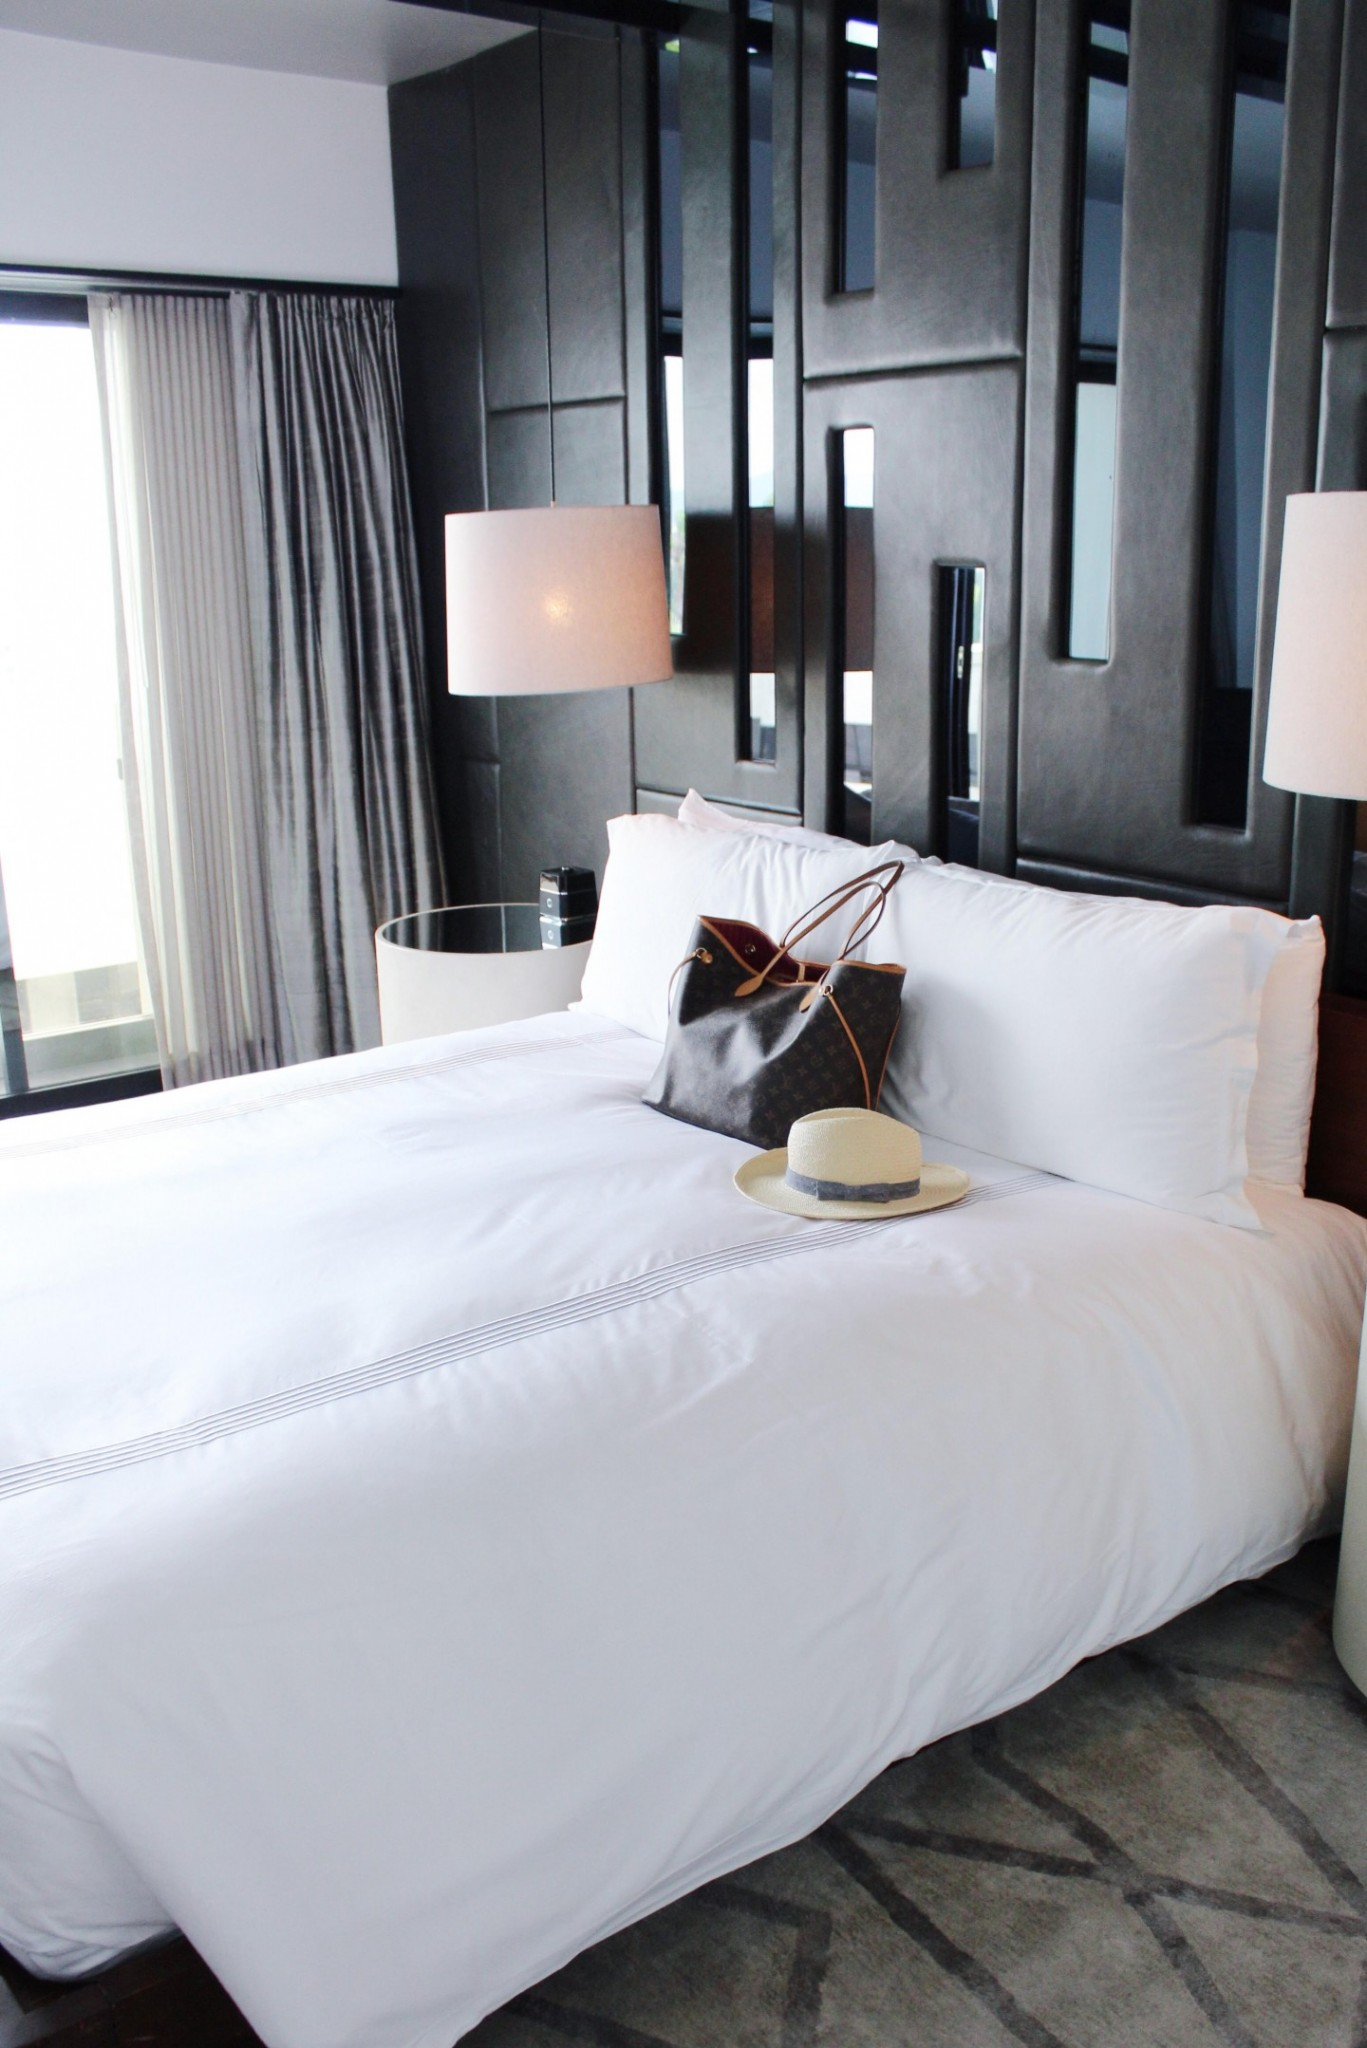 Lifestyle blogger Mollie Sheperdson gives you the deets on her stay at the SIXTY Beverly Hills